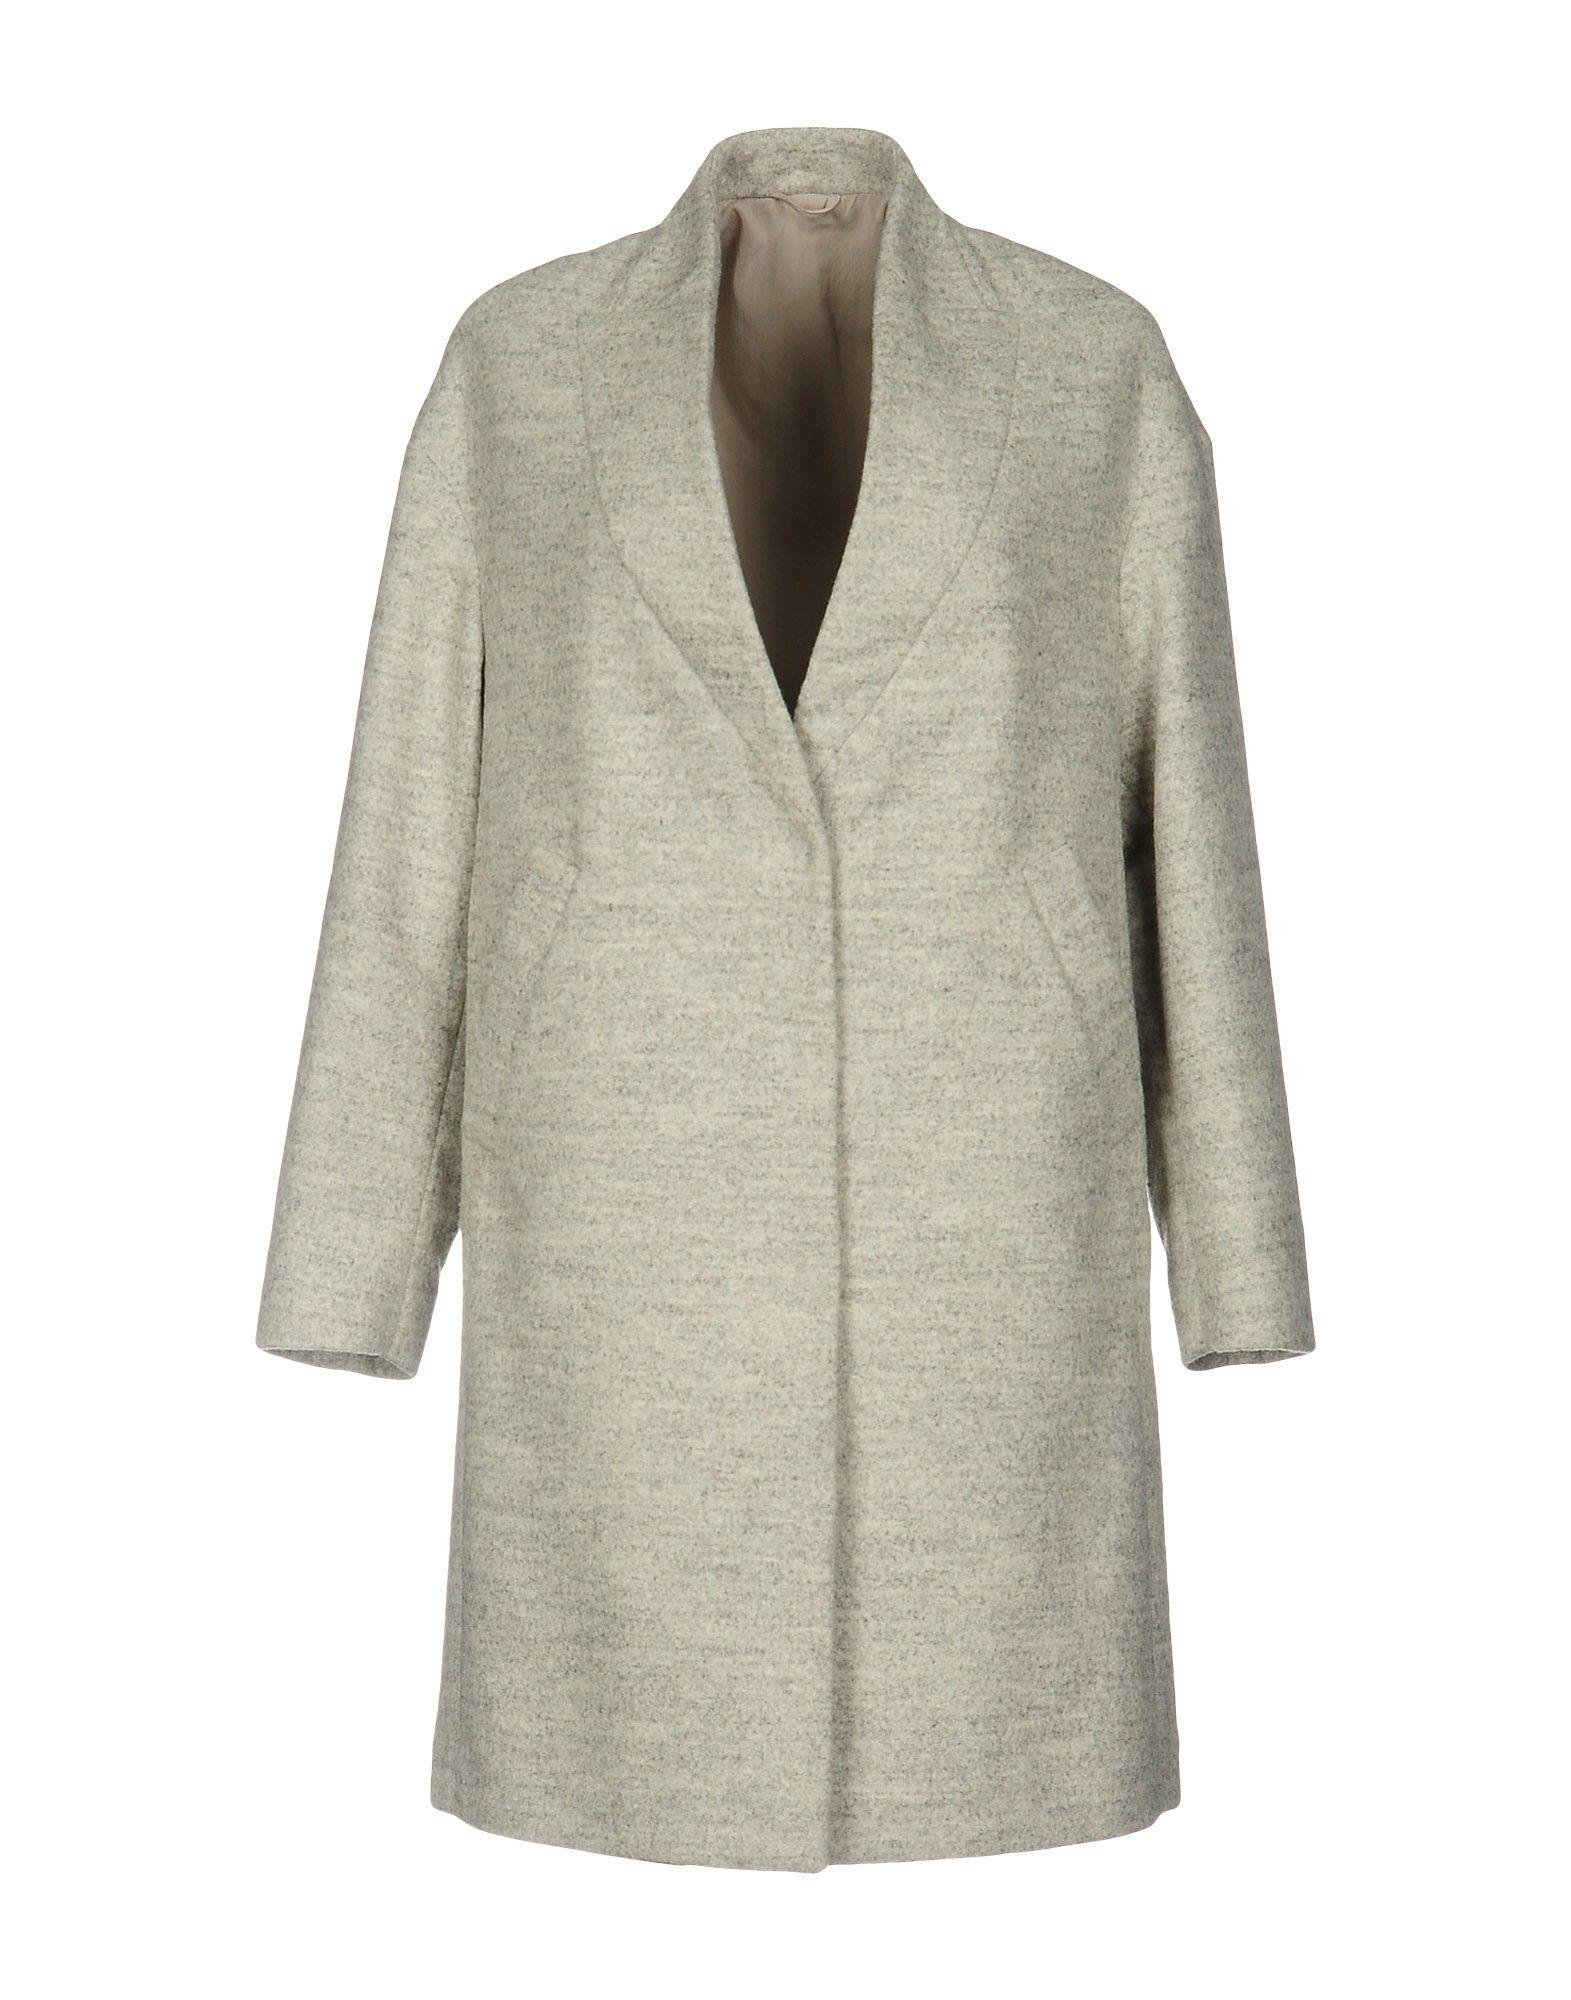 Brunello Cucinelli Coats In Light Grey